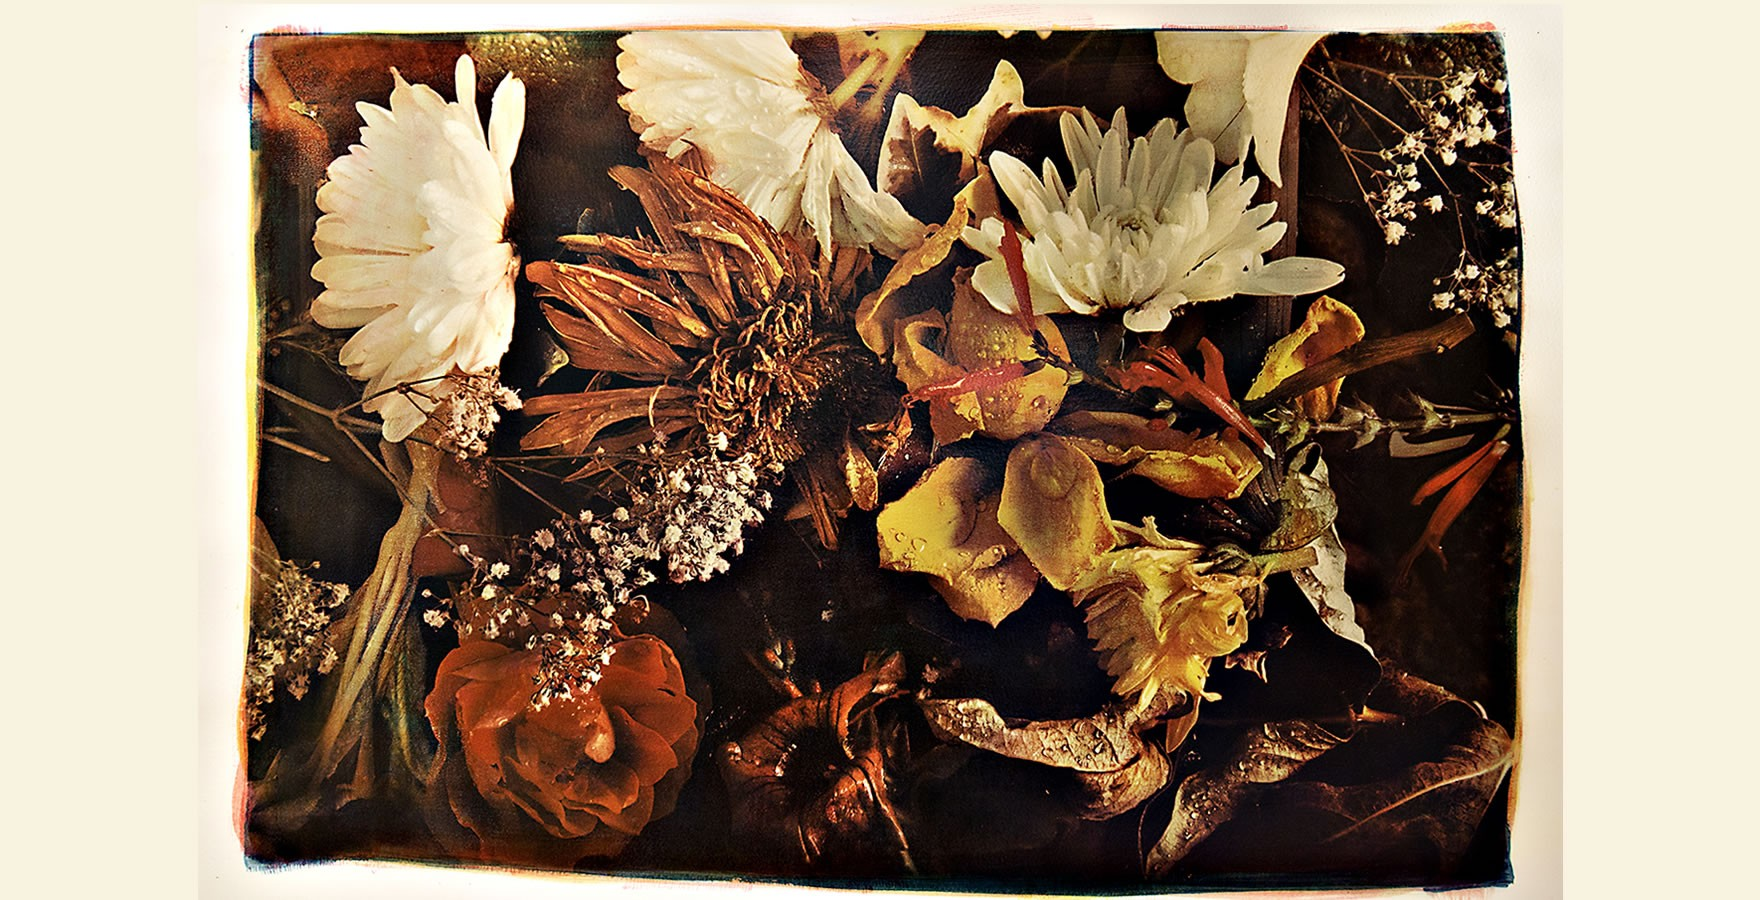 Flowers - Three color gum bichromate over cyanotype